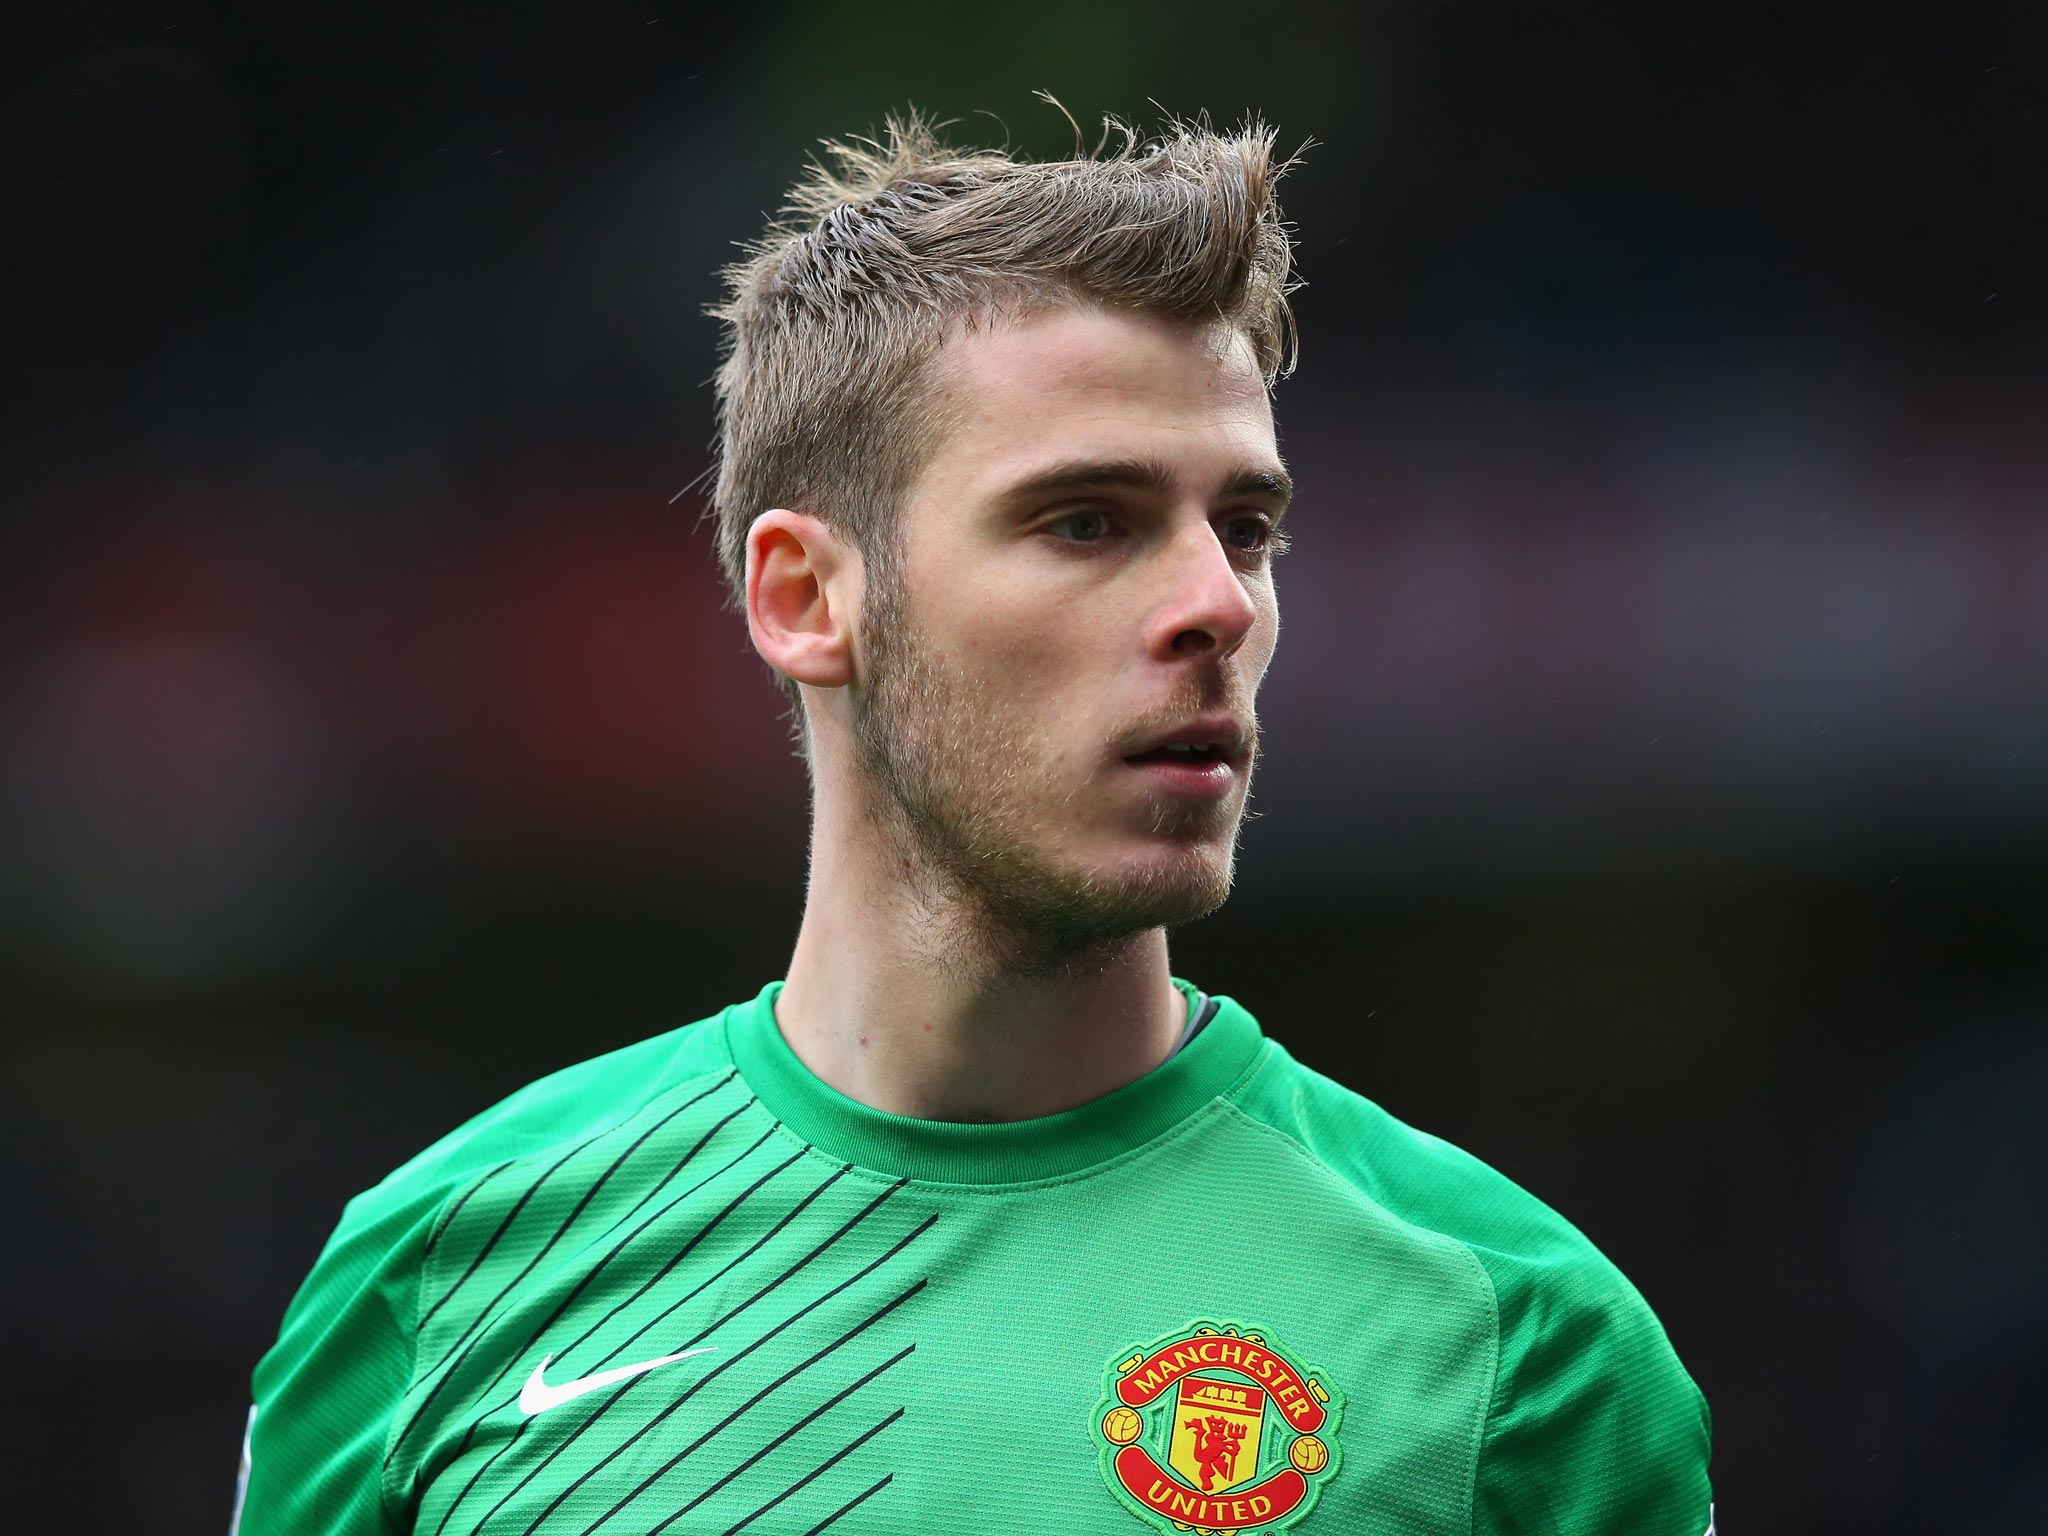 David De Gea Has Been Sent Home From Euro 2016 After Being